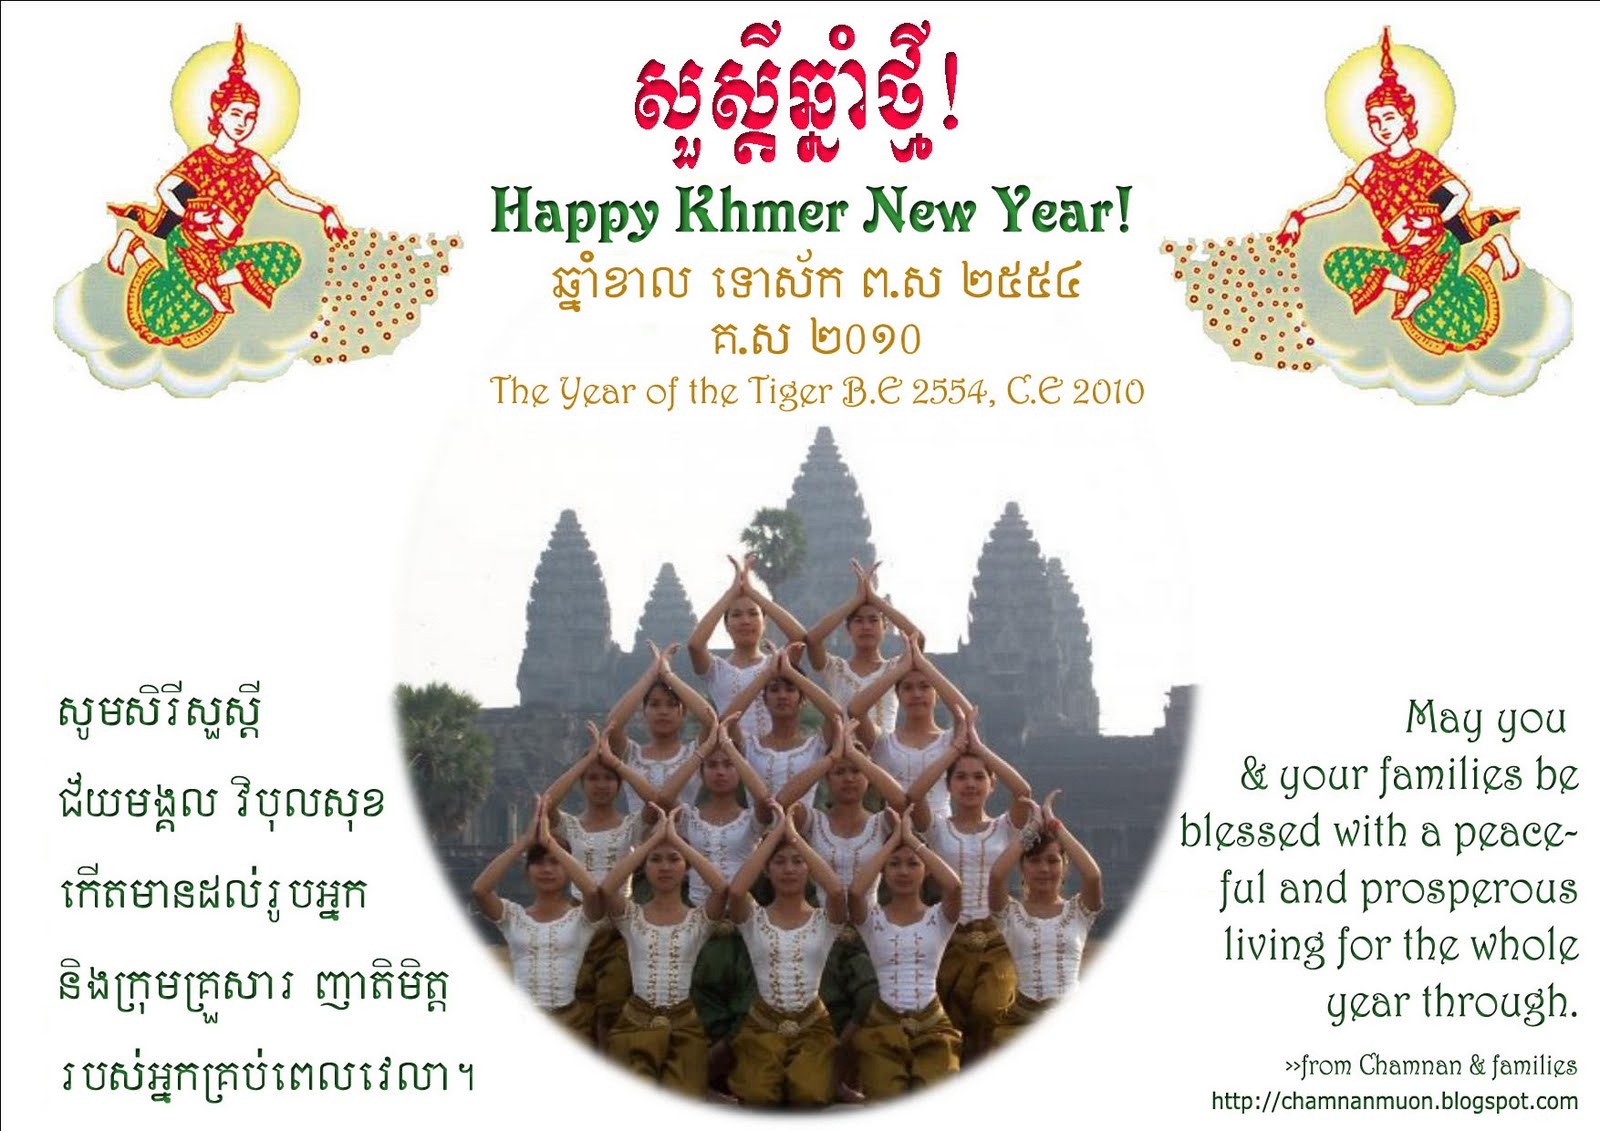 Essay writing about khmer new year